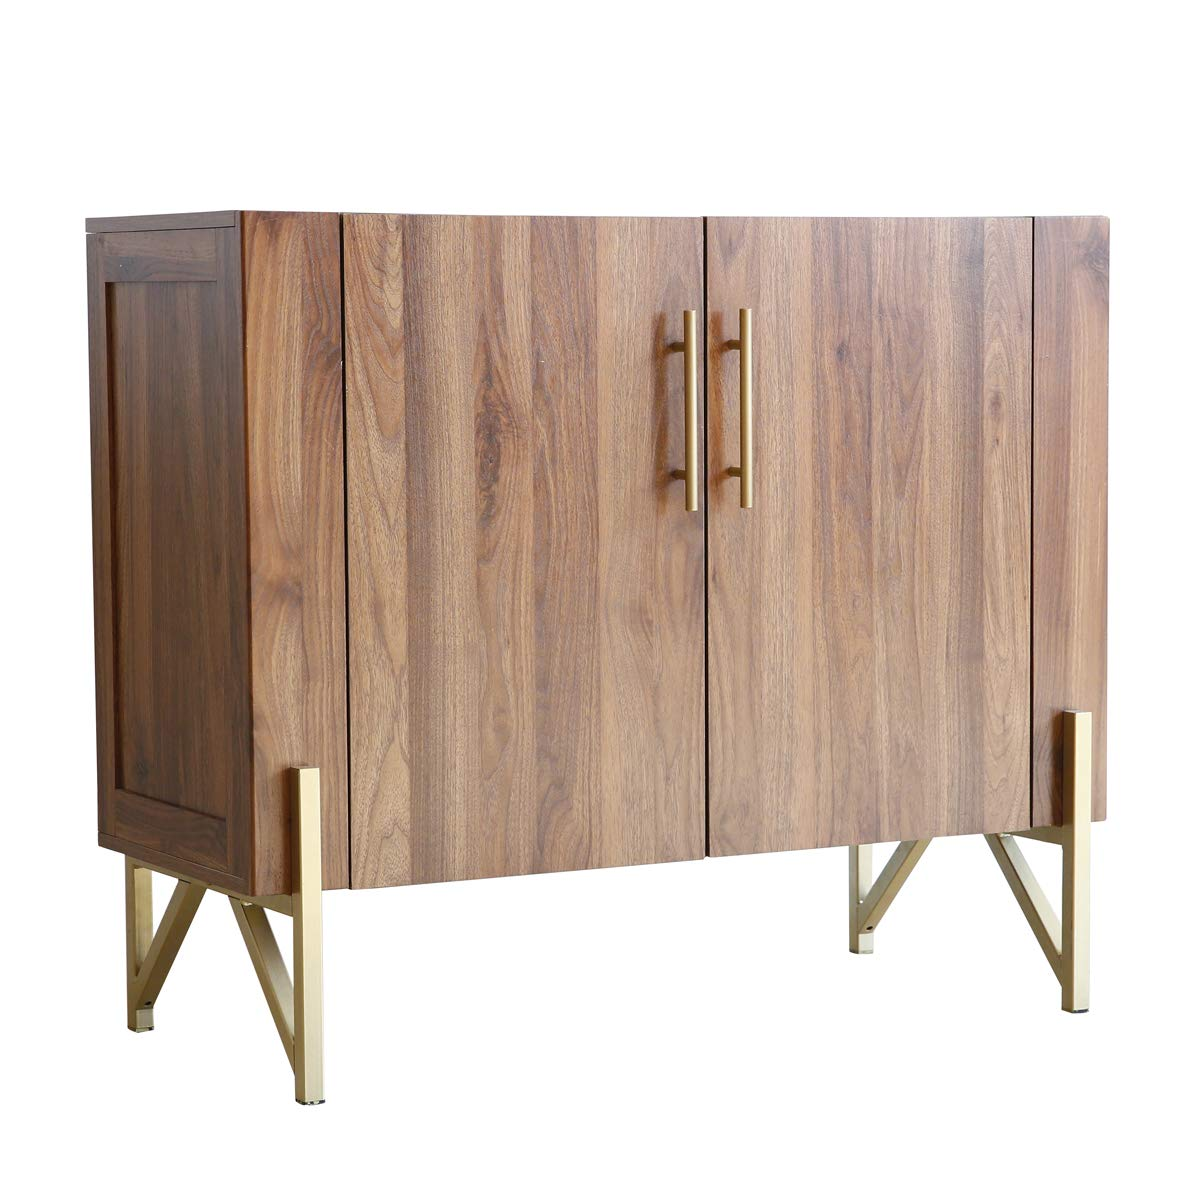 Roomfitters Mid Century Side Board, Dining Room Server, Credenza, Side Board, Buffet, Elegant Walnut Finish with Gold Legs by Roomfitters (Image #3)